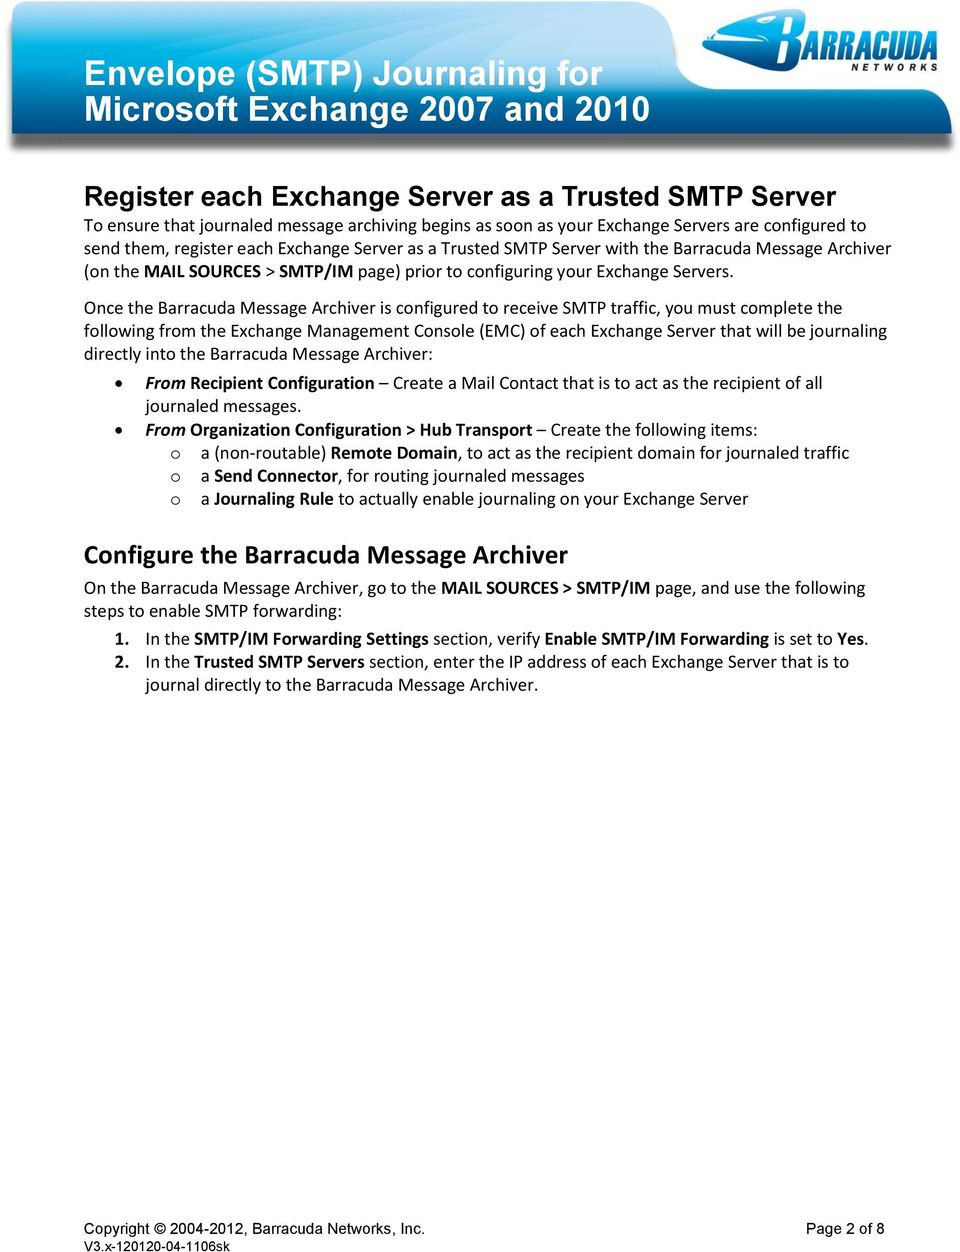 Once the Barracuda Message Archiver is configured to receive SMTP traffic, you must complete the following from the Exchange Management Console (EMC) of each Exchange Server that will be journaling